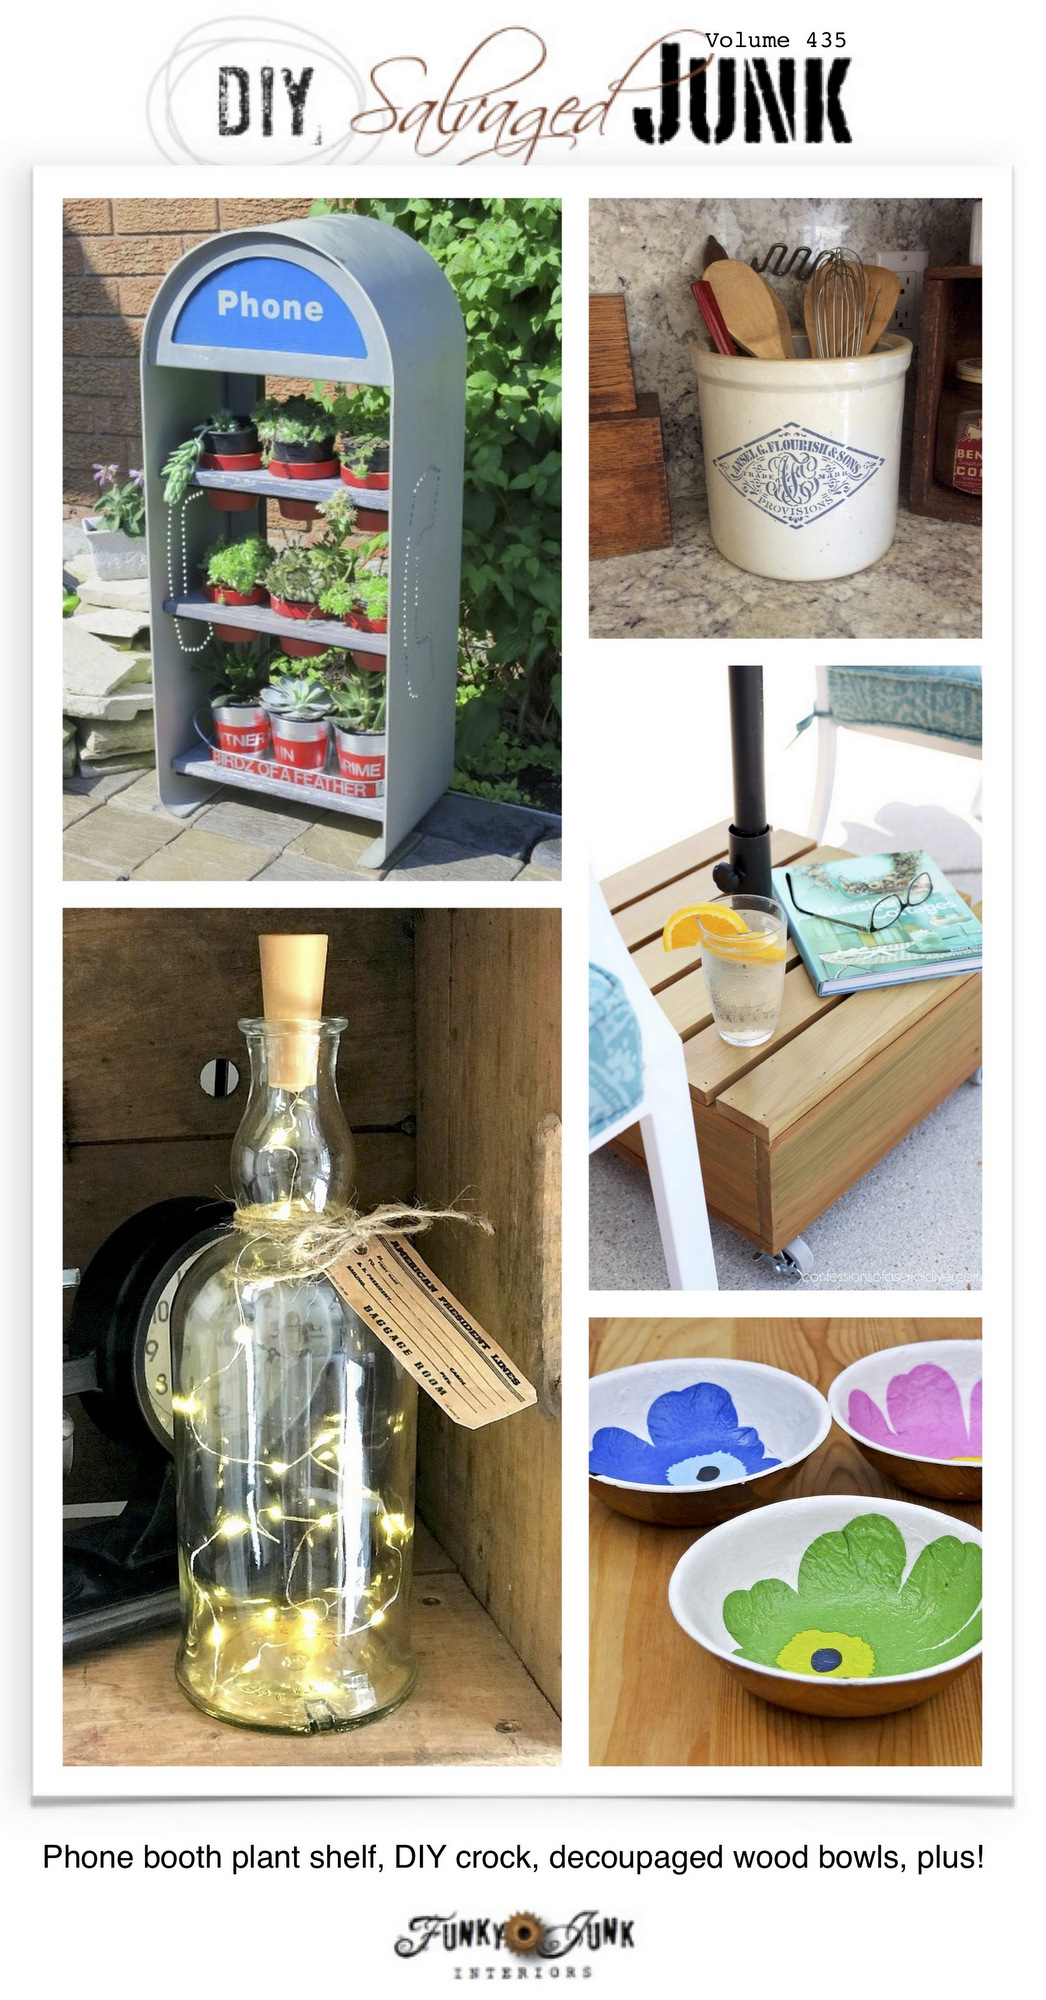 DIY Salvaged Junk Projects 435 - phone booth plant shelf, DIY crock, decoupaged wood bowls, plus! Features and NEW junk projects!